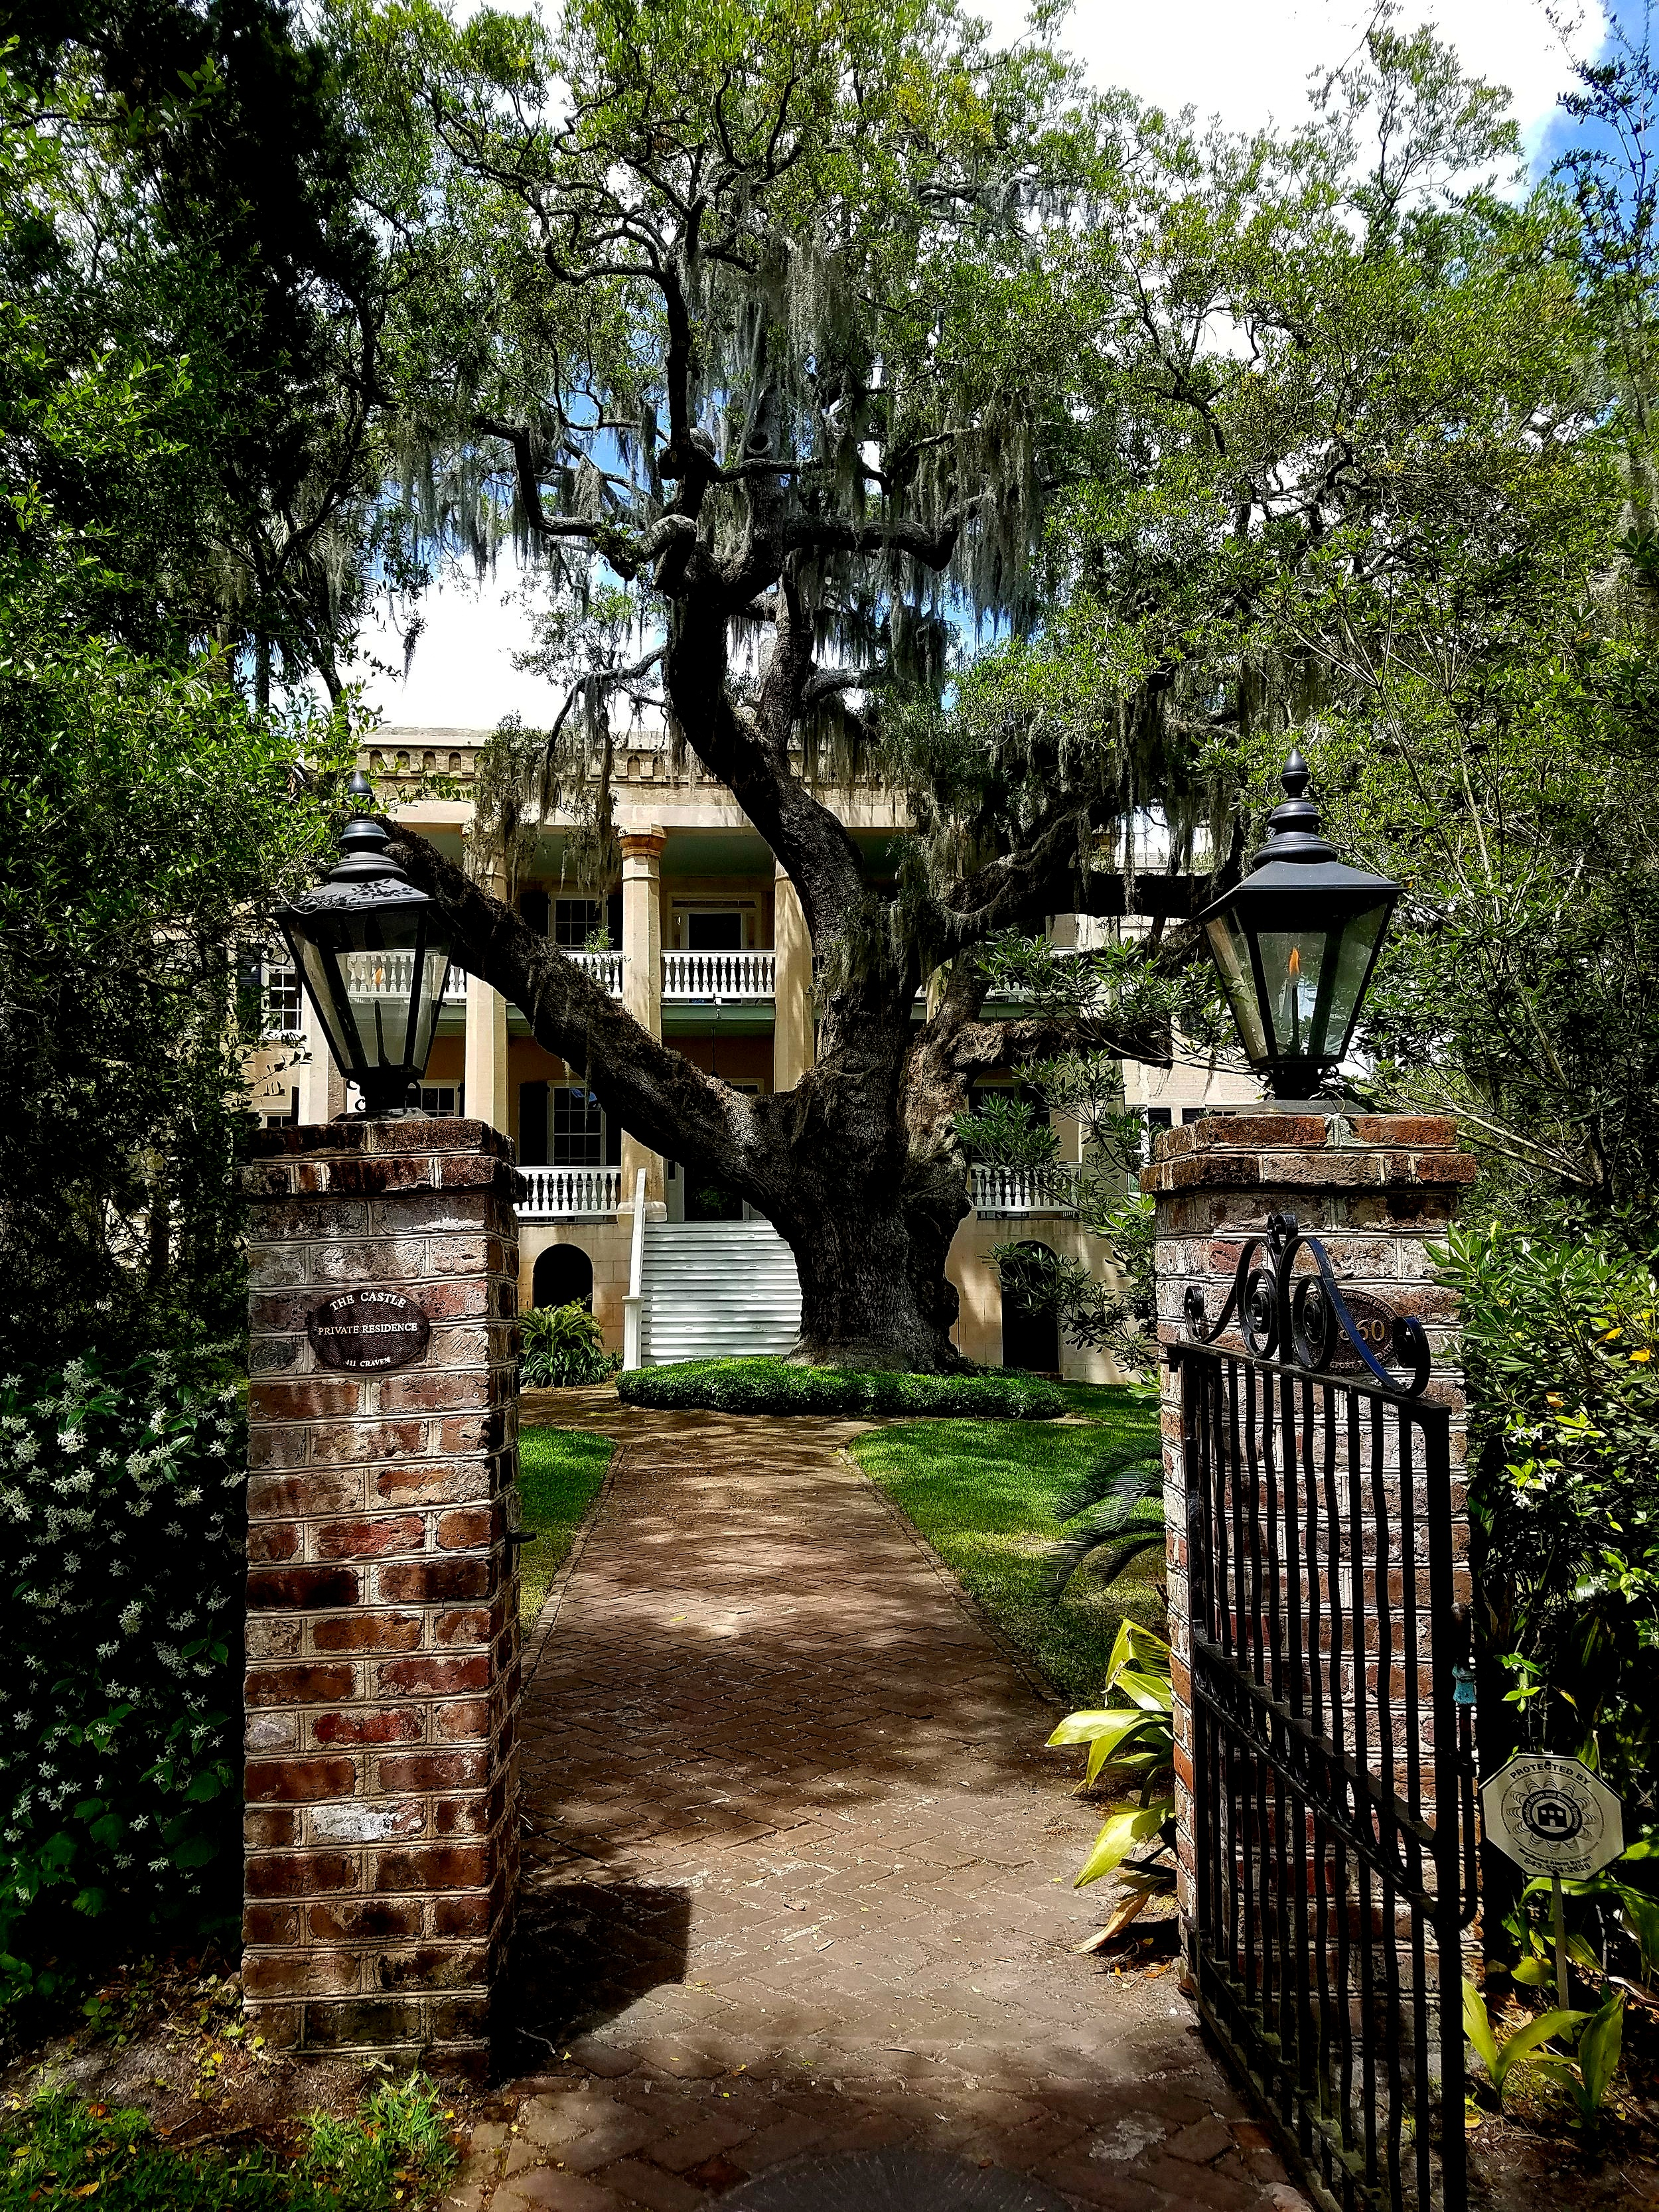 'The Castle'. ca. 1860. The live oak is over 300 years old.